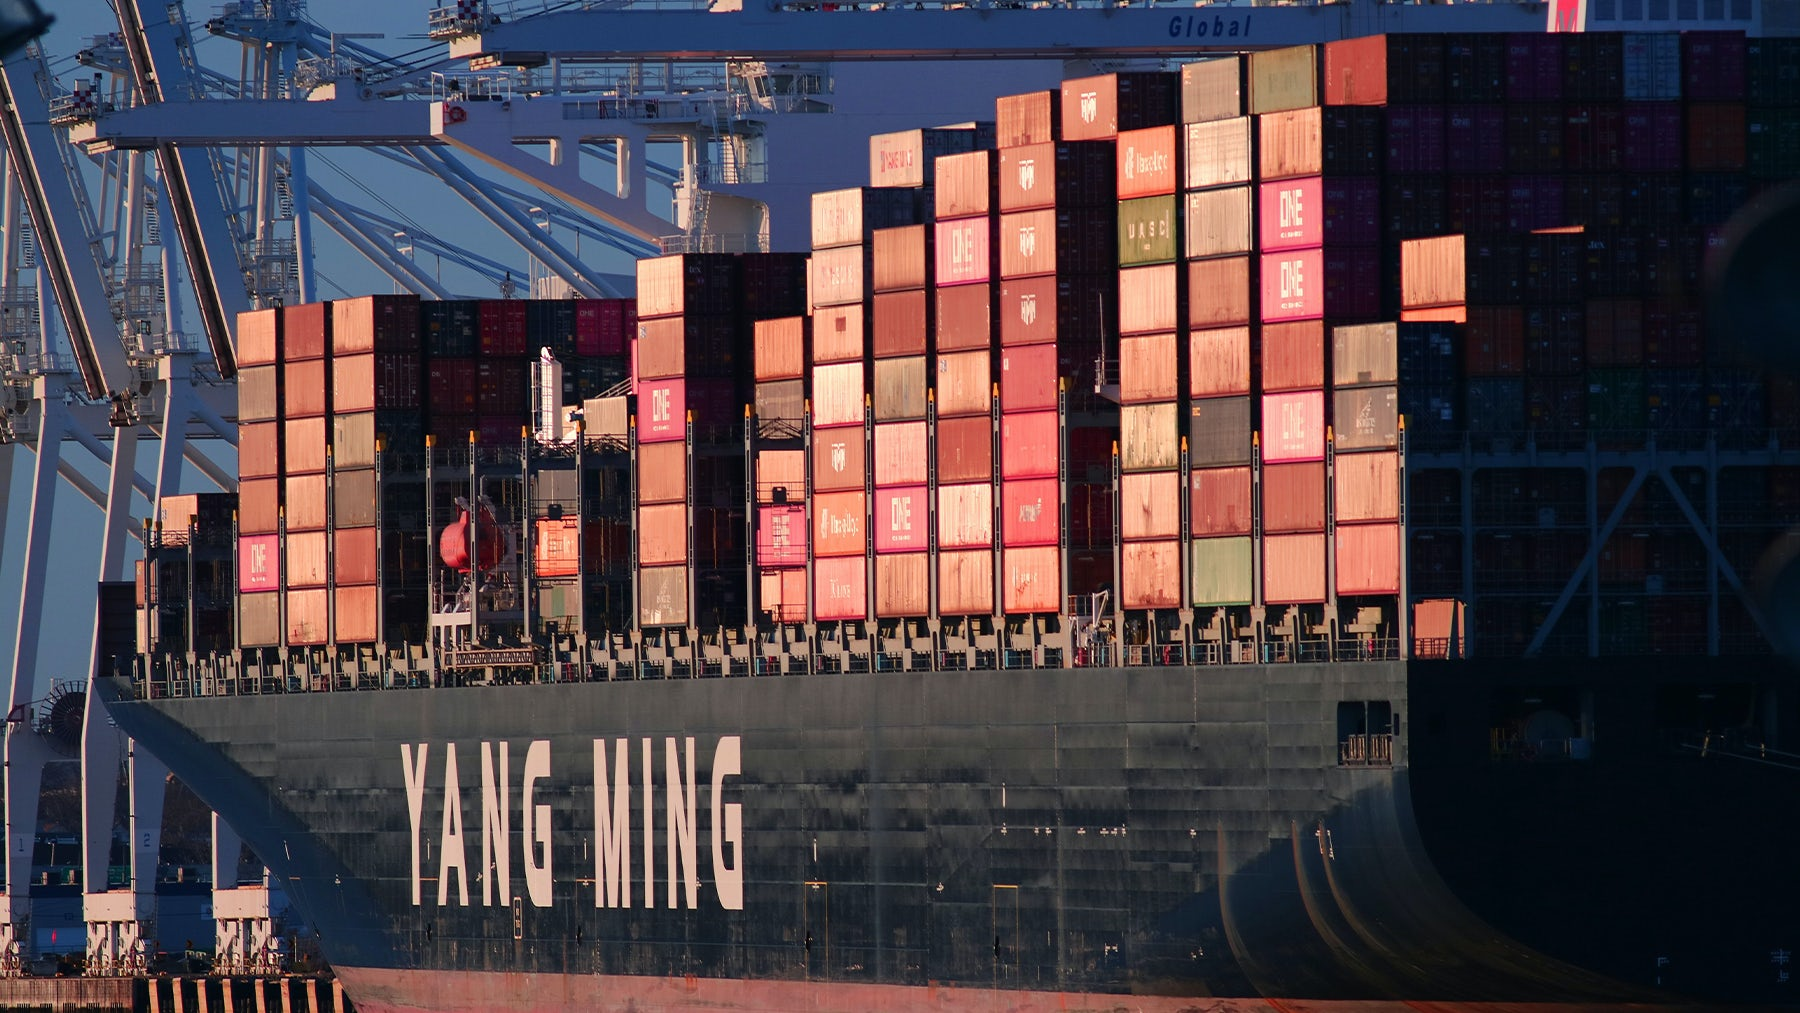 This port closure follows soon after another shut down in Shenzhen, both due to Covid-19 infections. Getty Images.